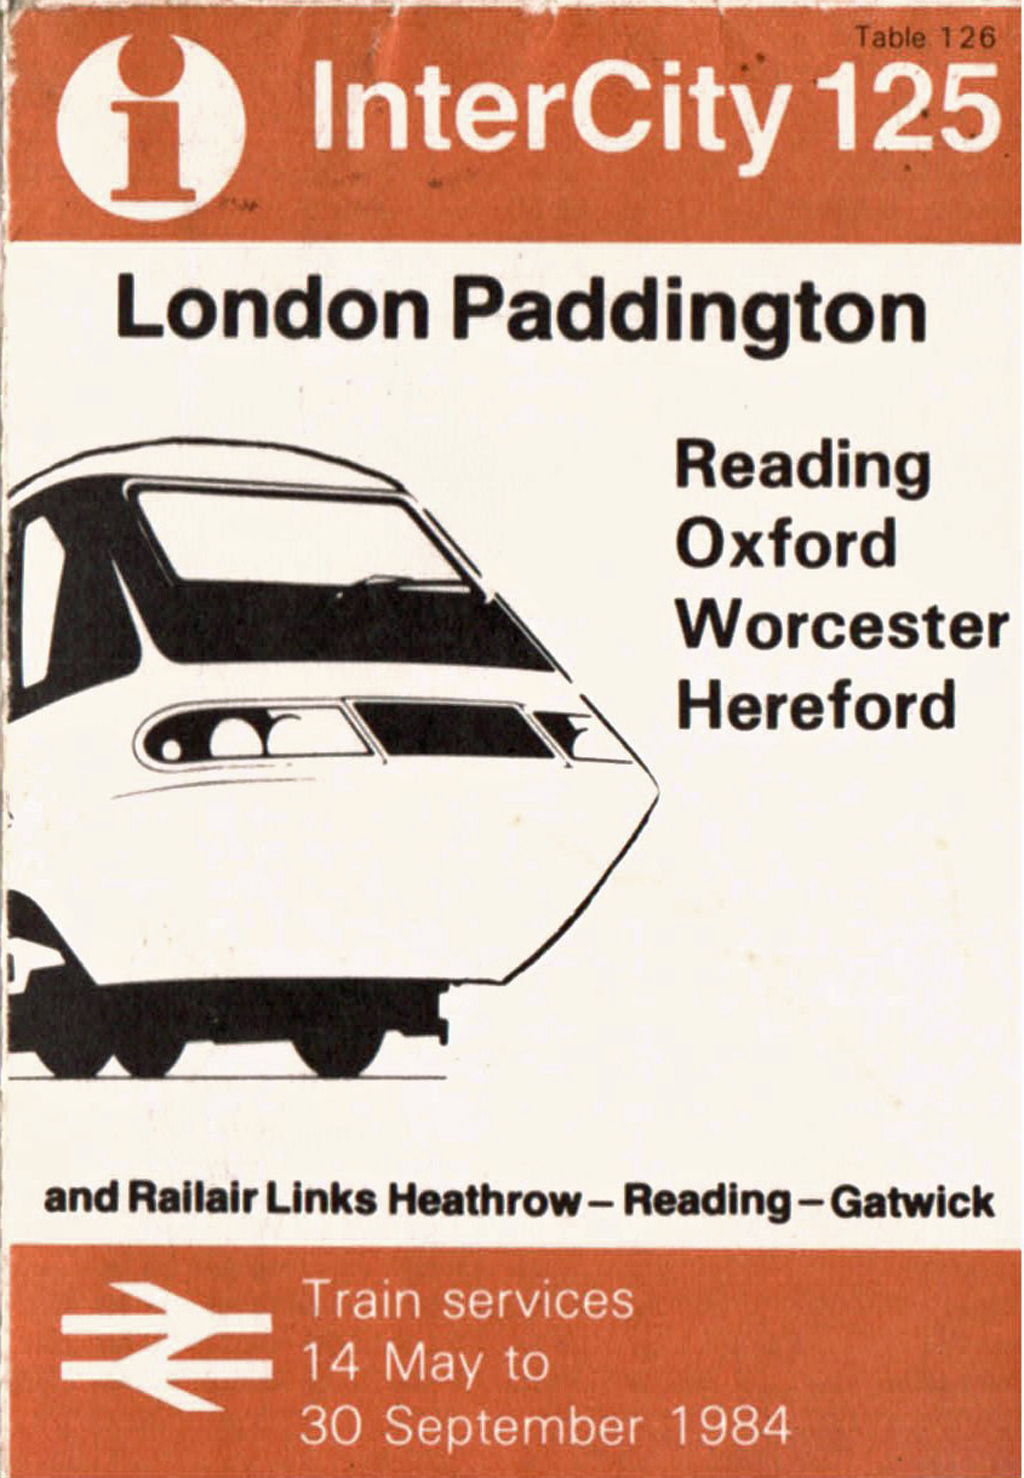 London 1984 timetable cover